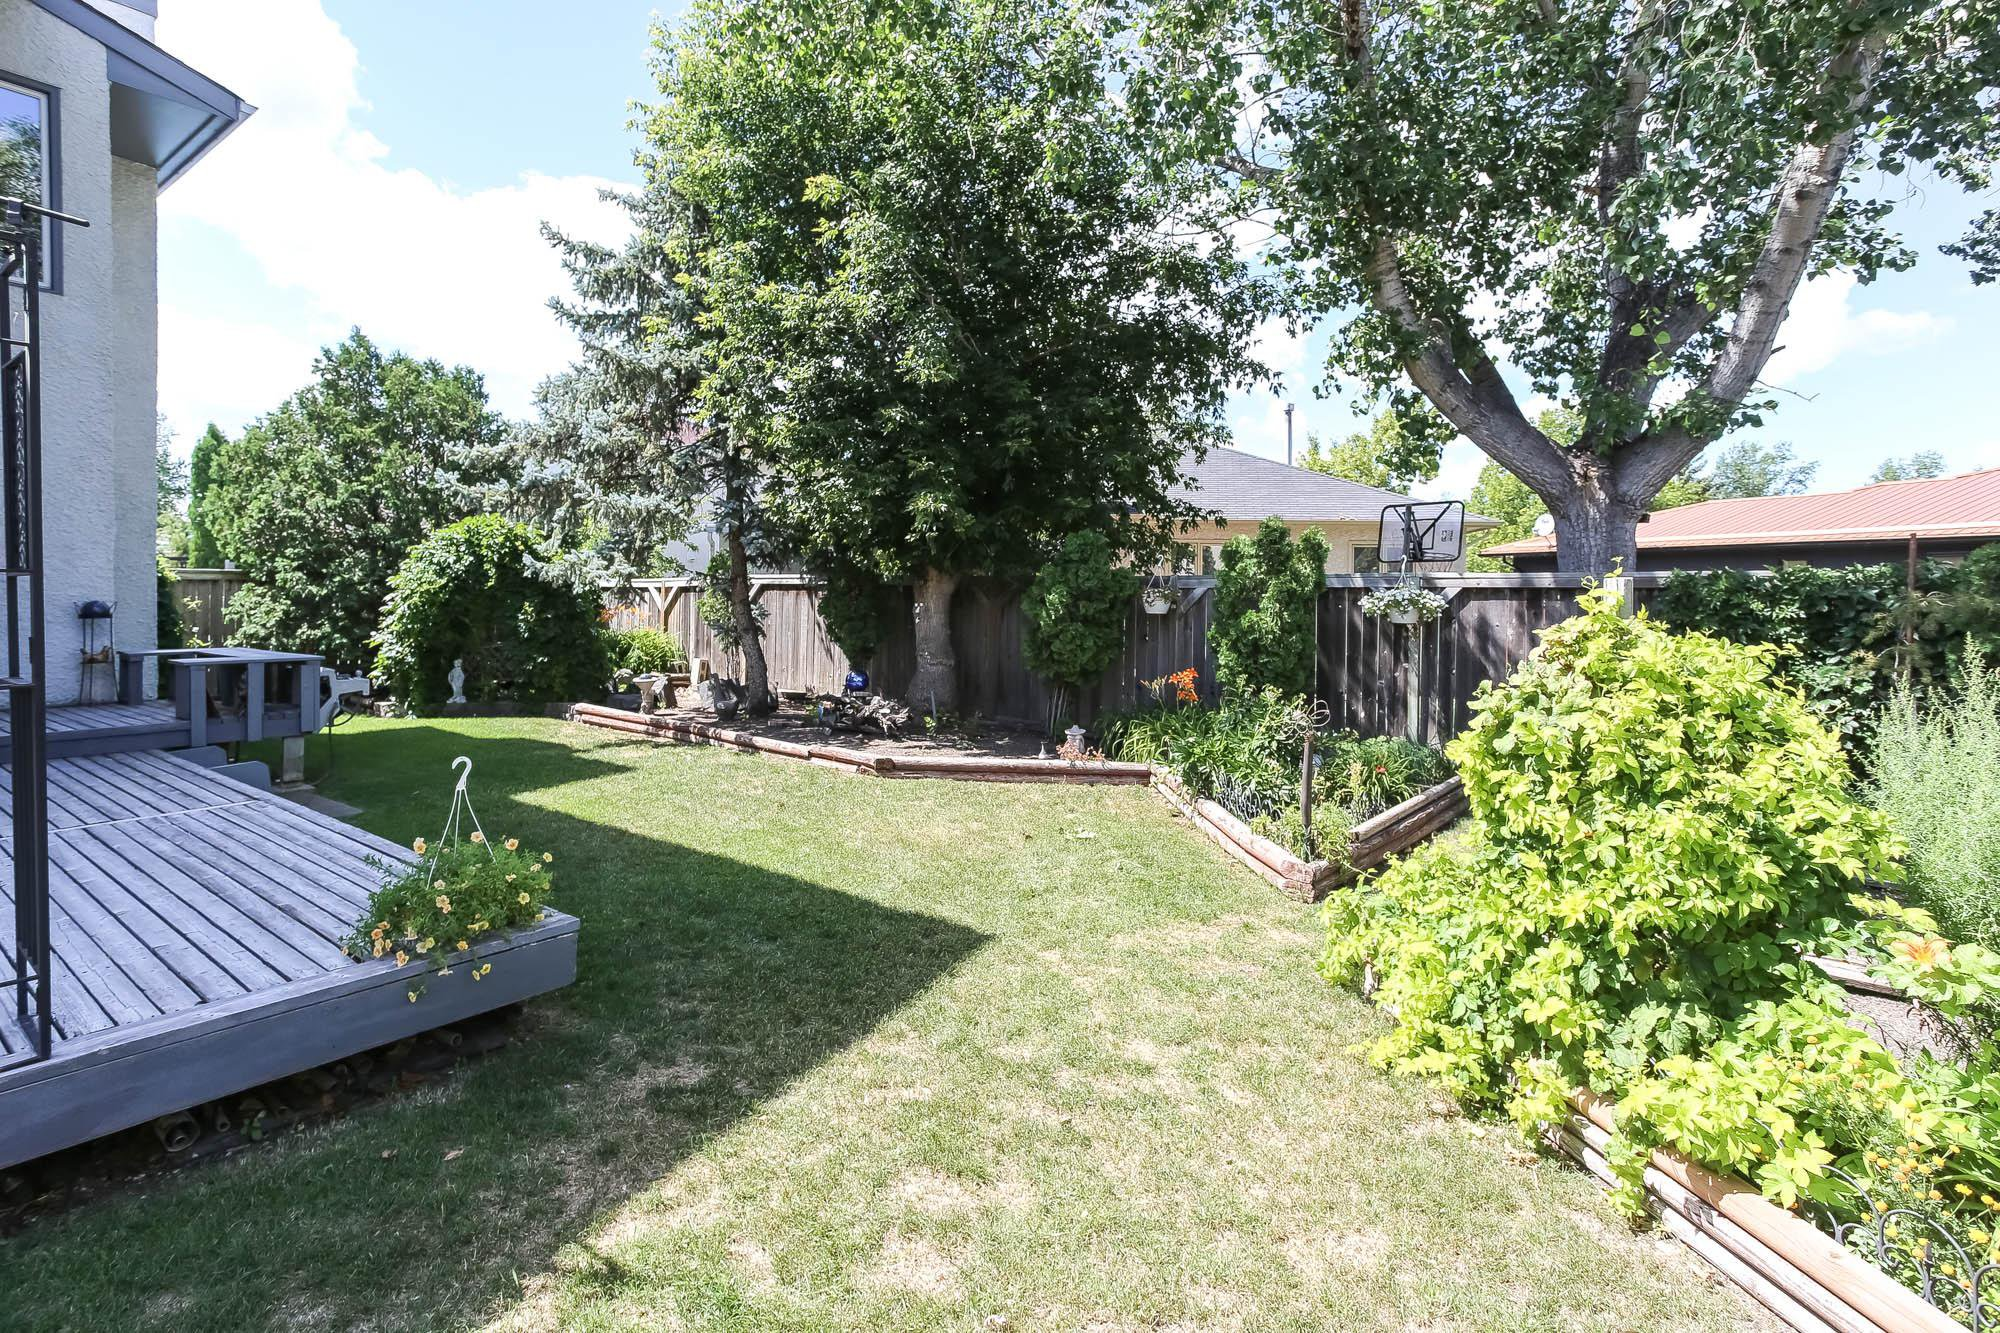 Photo 2: Photos: 14 Torrington Road in Winnipeg: Whyte Ridge Single Family Detached for sale (1P)  : MLS®# 202017383